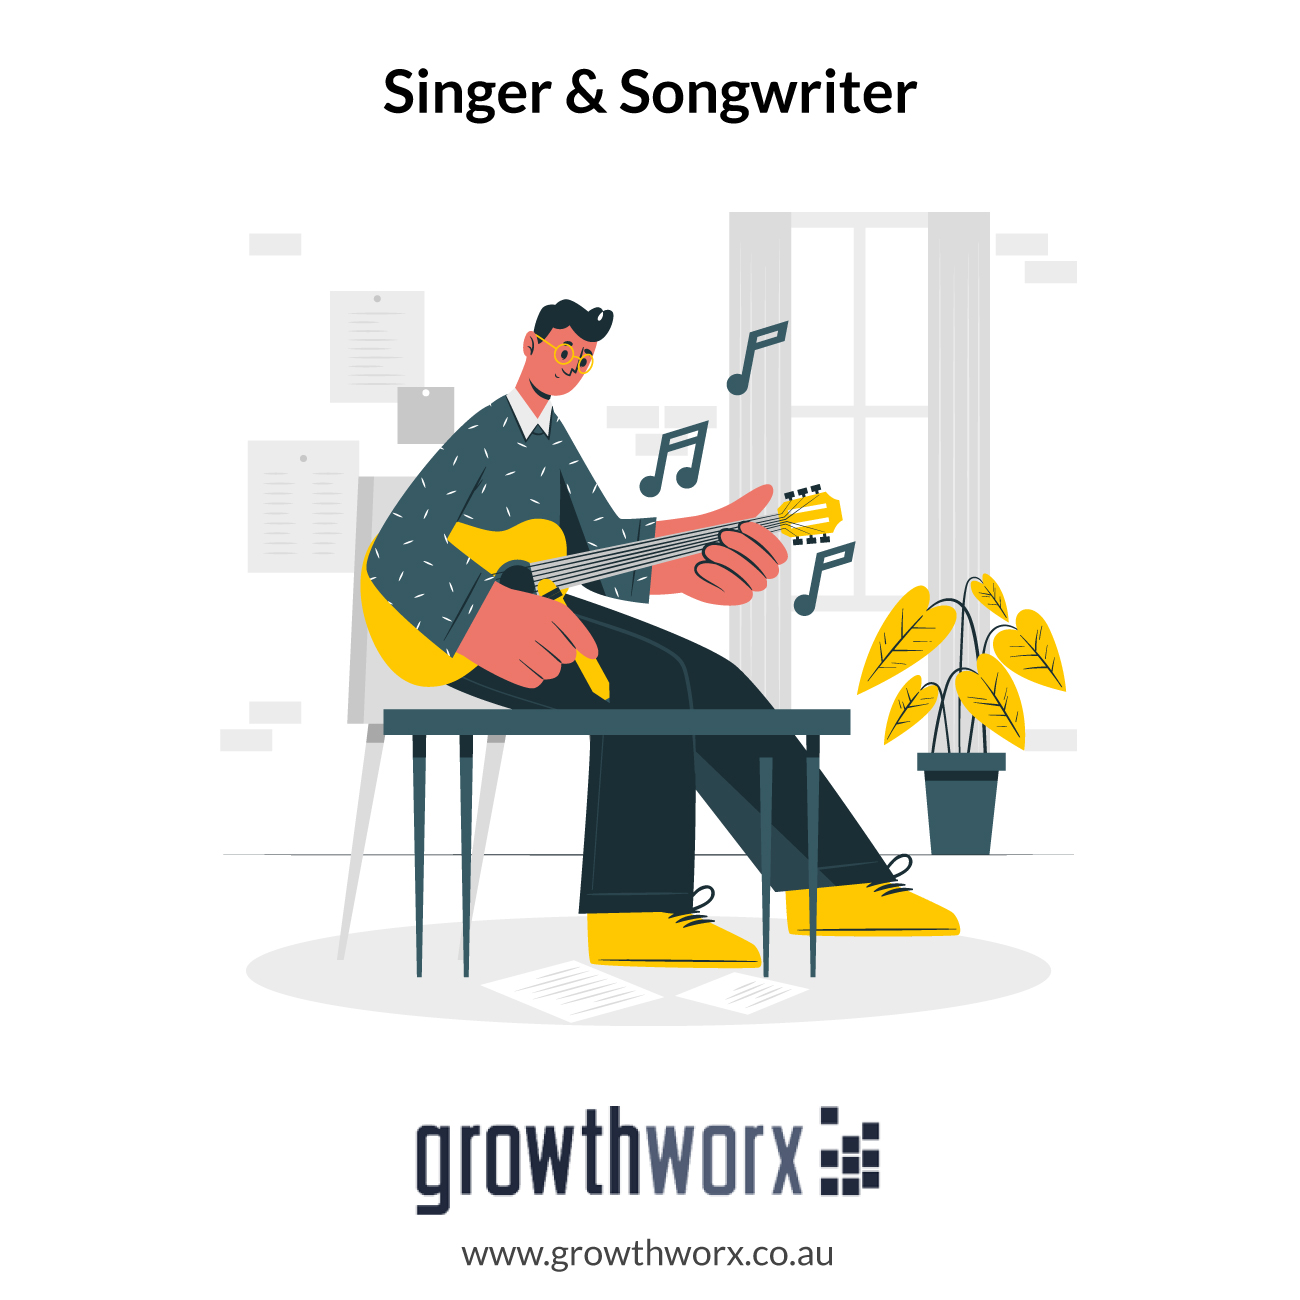 I will be your singer and songwriter 1